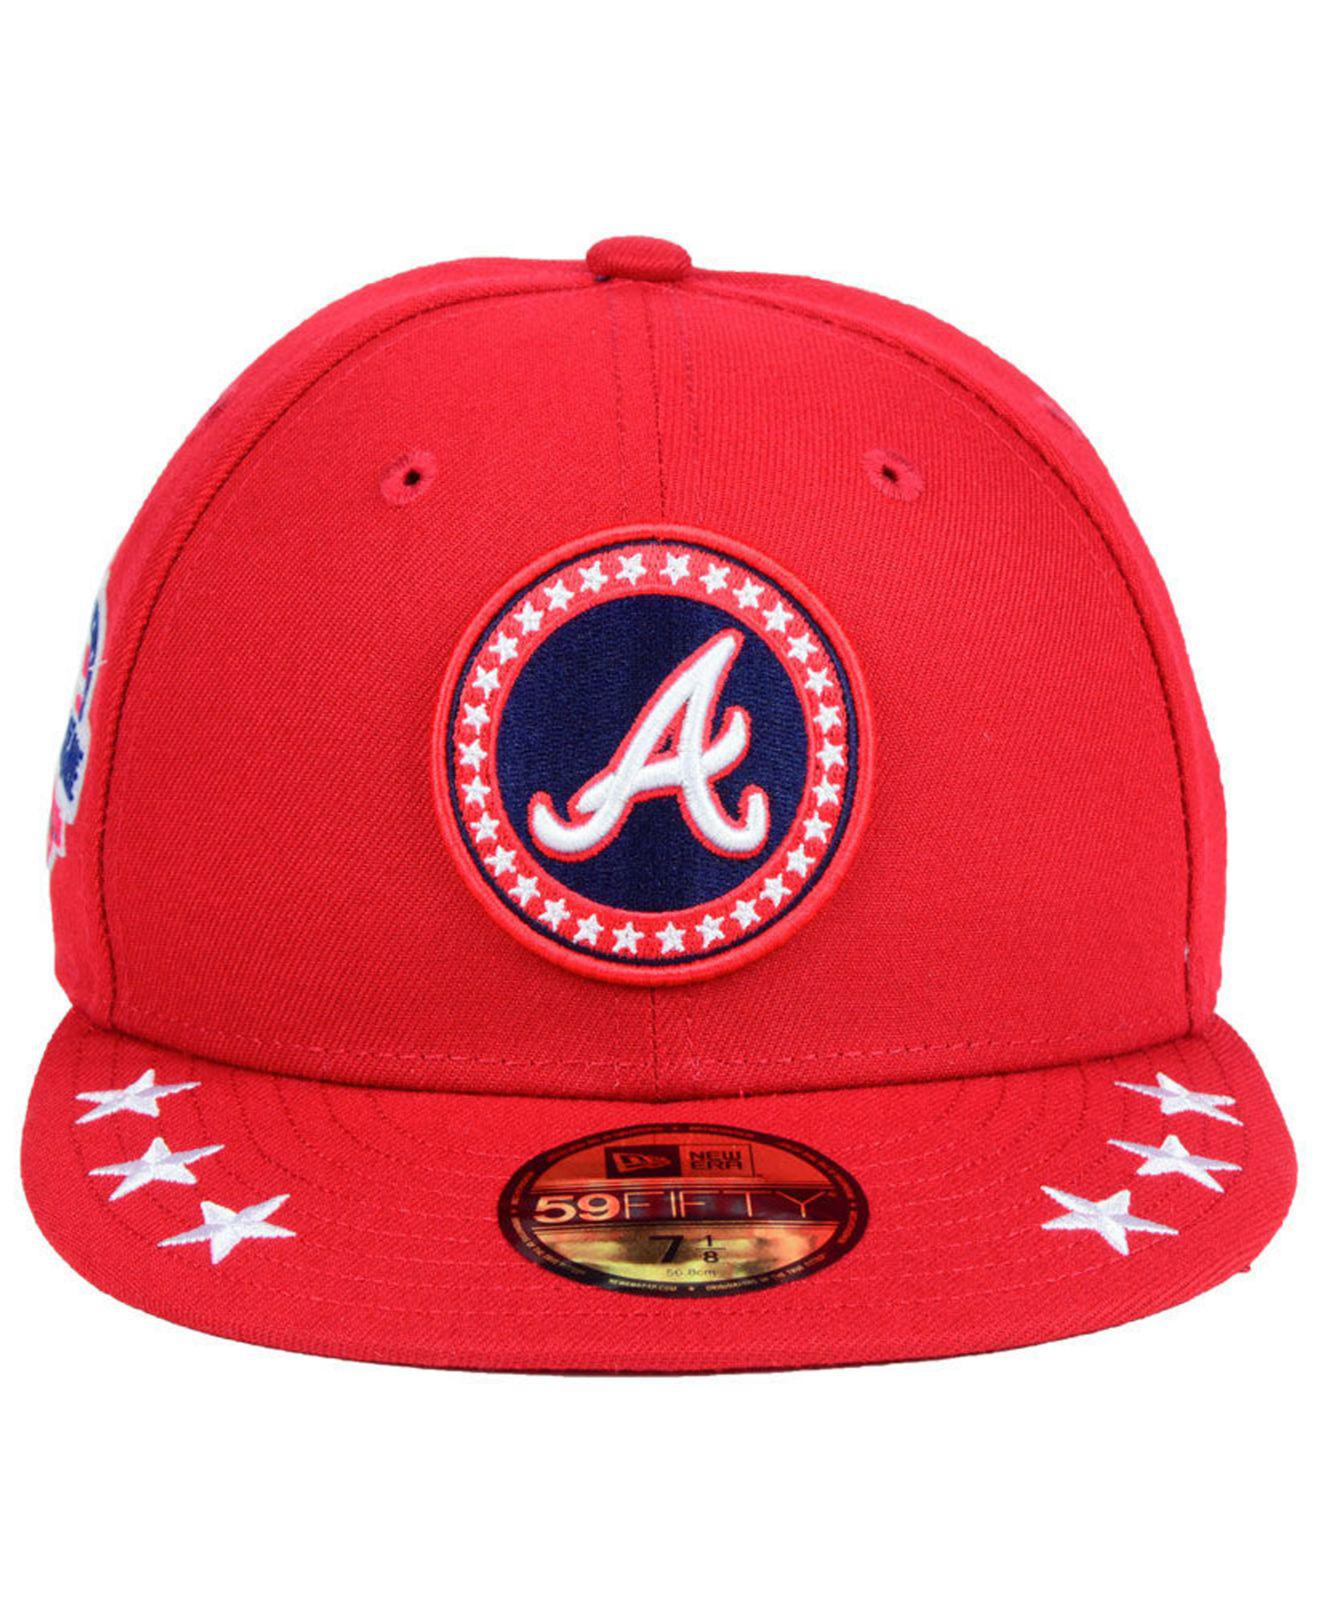 buy online 691e1 380b8 ... sweden lyst ktz atlanta braves all star workout 59fifty fitted cap 2018  in red for men